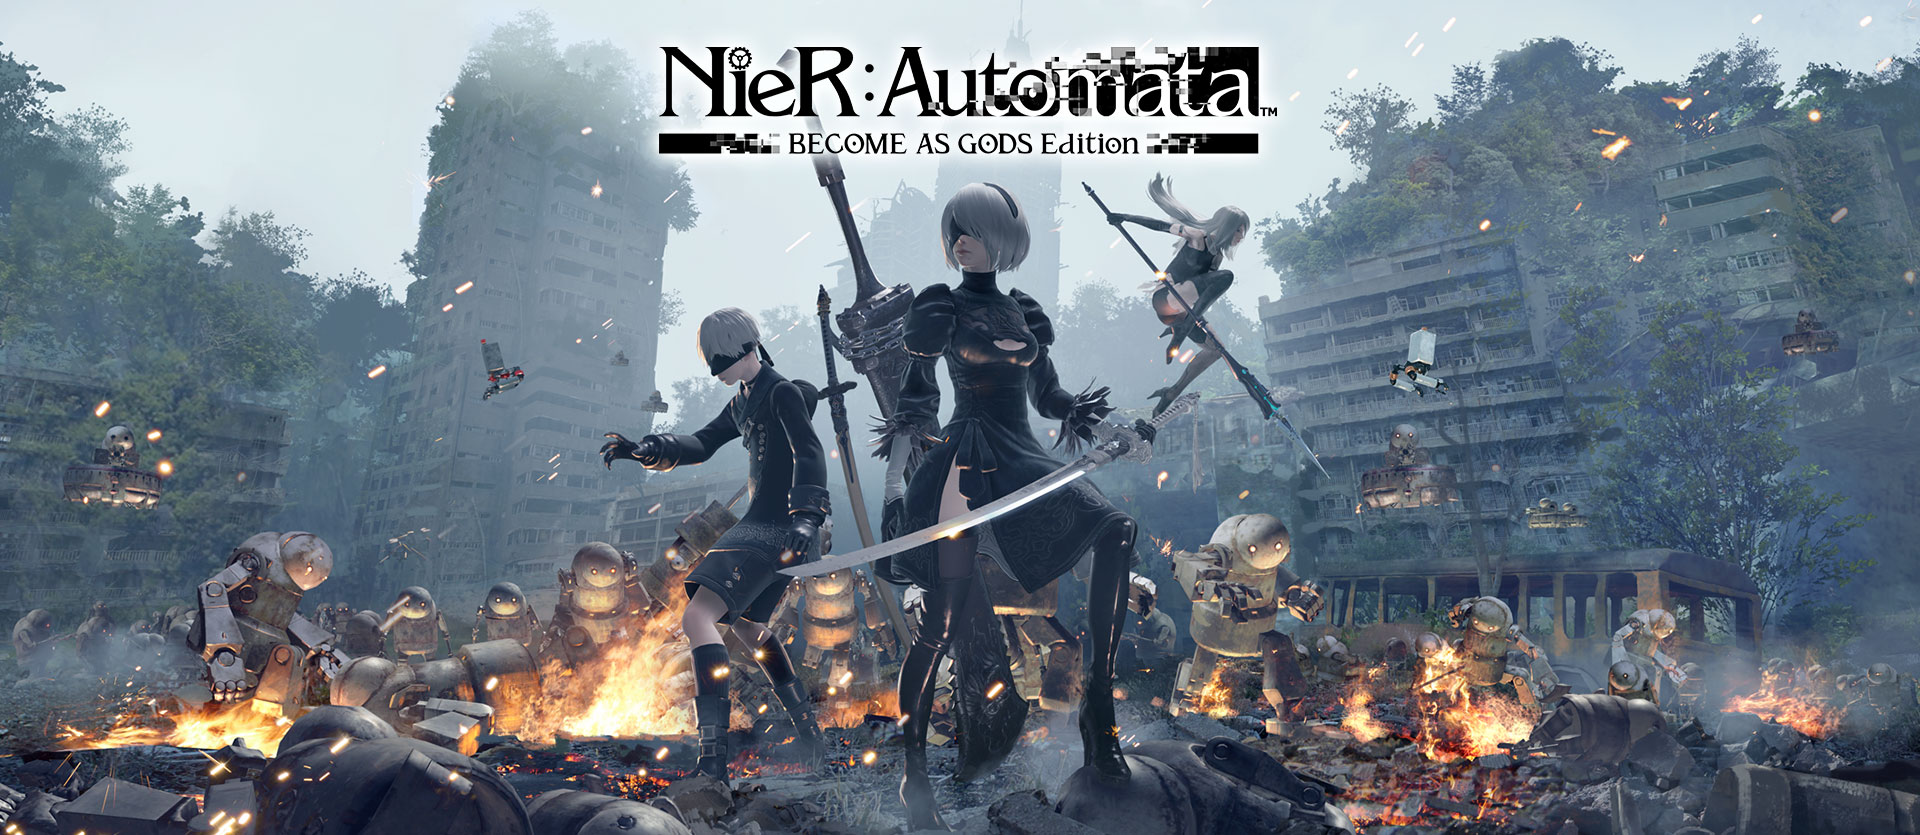 Nier Automata Become as Gods Edition, androids 2B, 9S and A2 battle machine invaders from another world